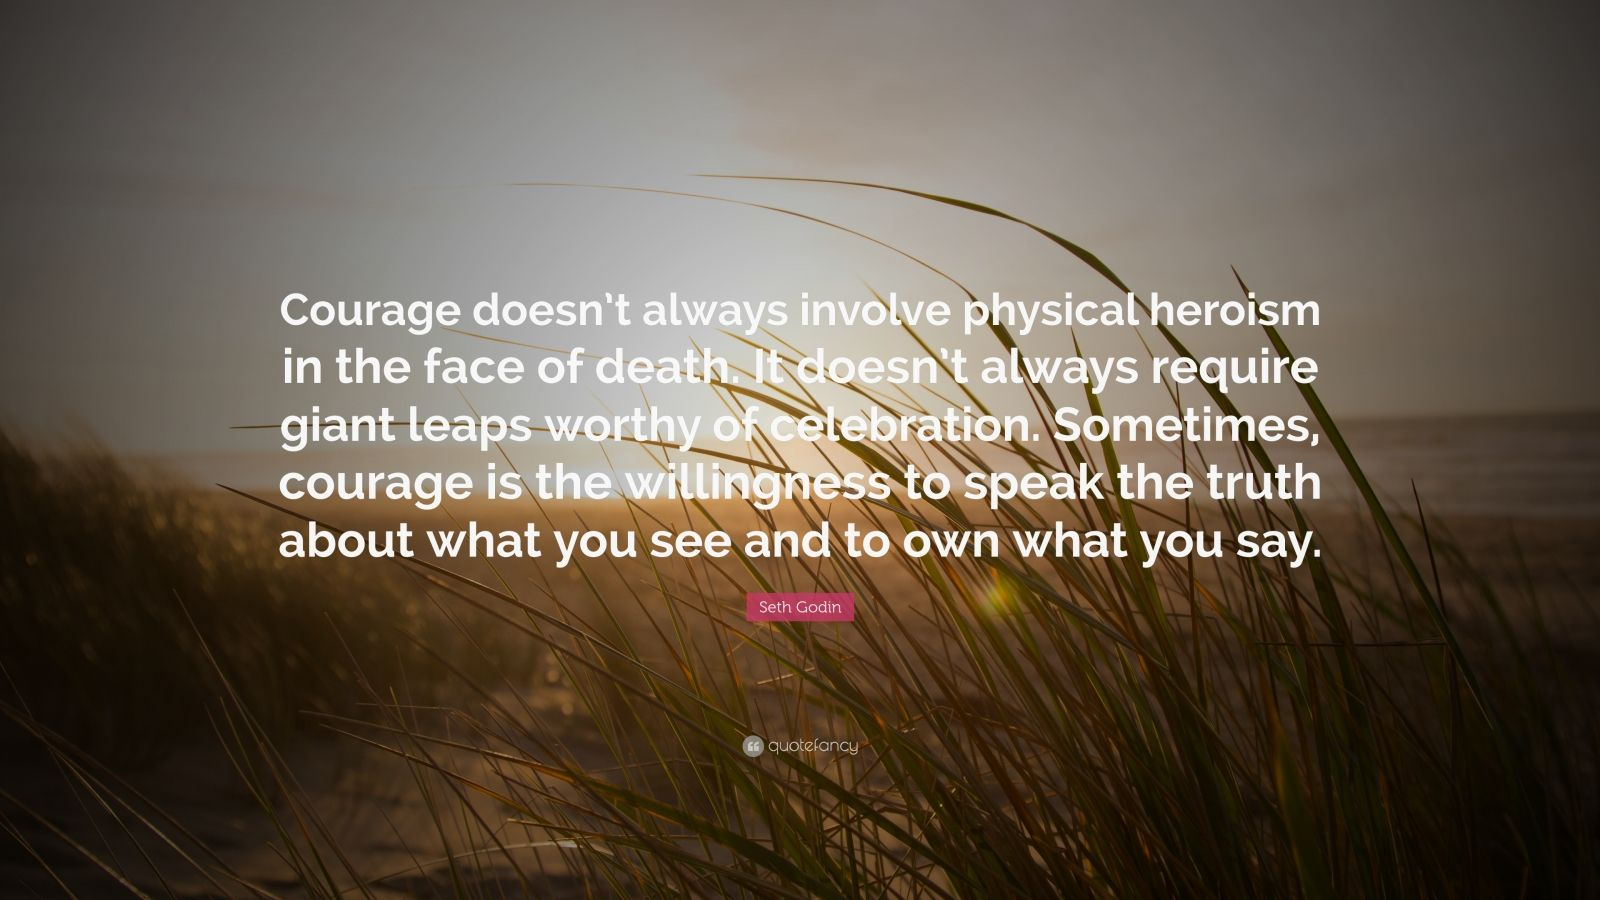 """Seth Godin Quote: """"Courage doesn't always involve physical heroism in the face of death. It doesn't always require giant leaps worthy of celebration. Sometimes, courage is the willingness to speak the truth about what you see and to own what you say."""""""